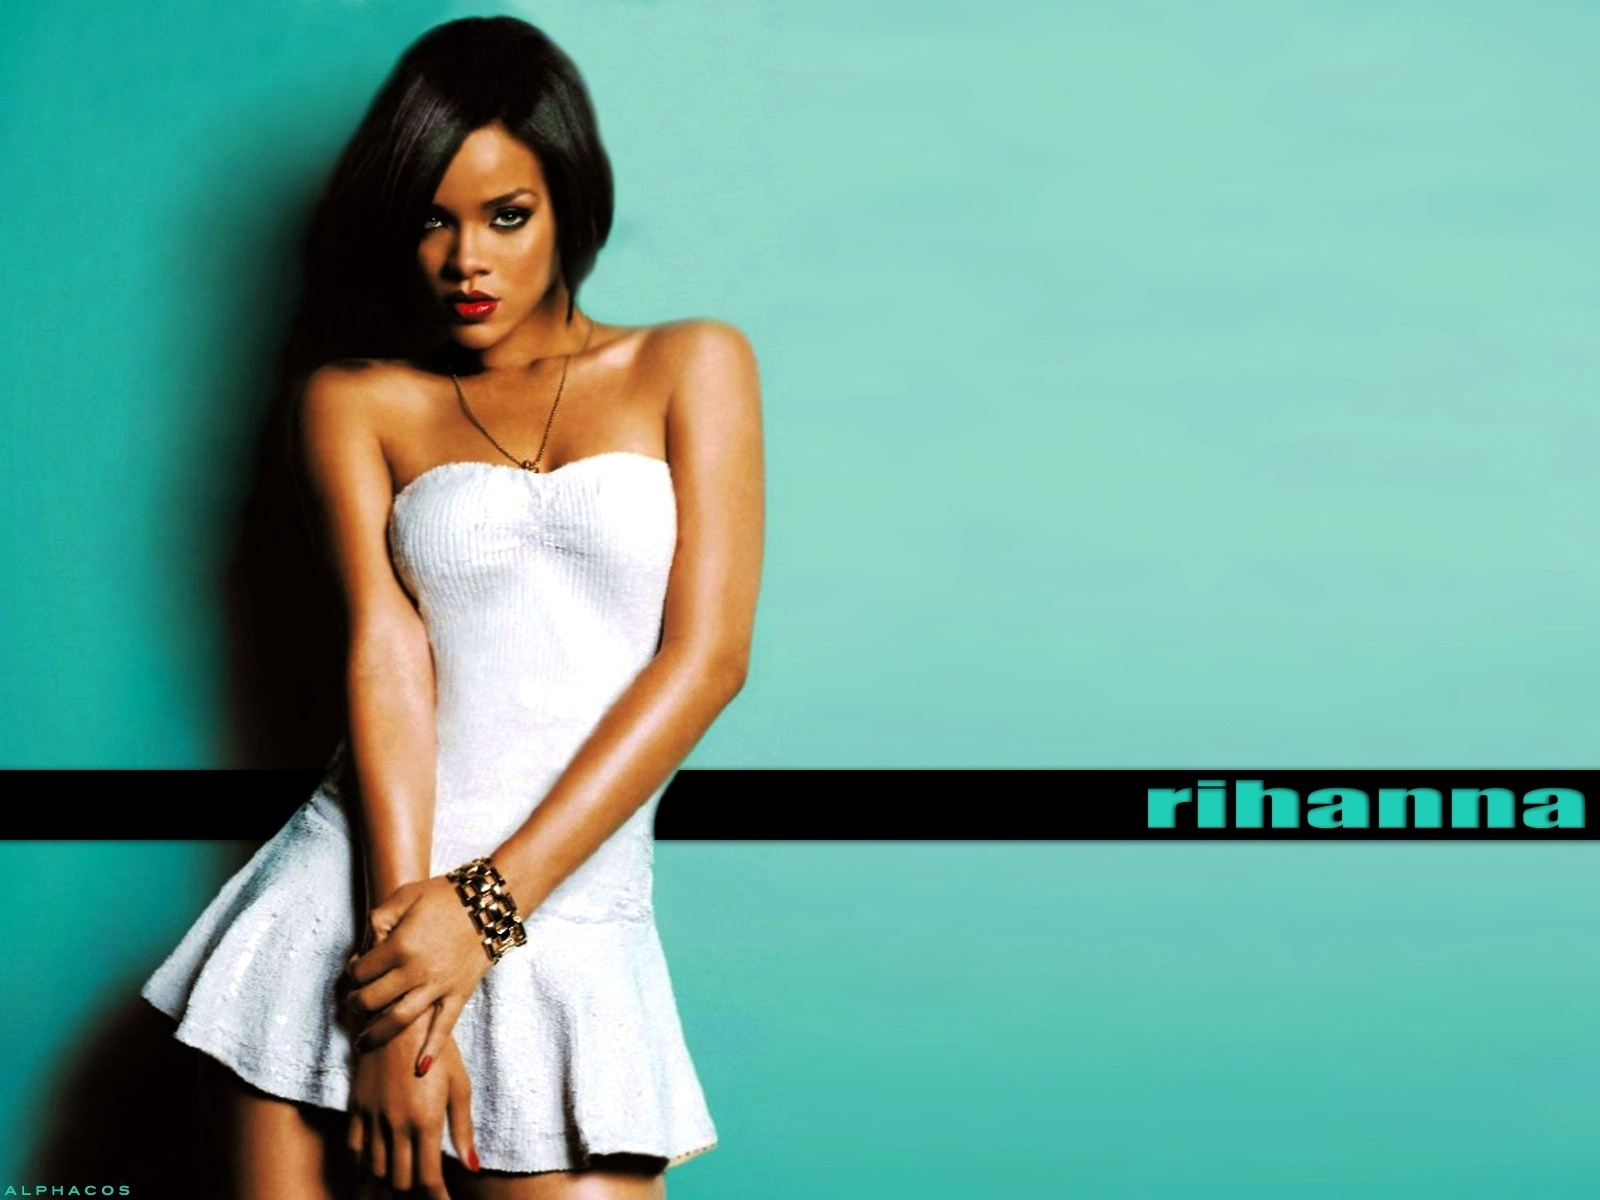 rihanna - Rihanna Wallpaper (1453207) - Fanpop